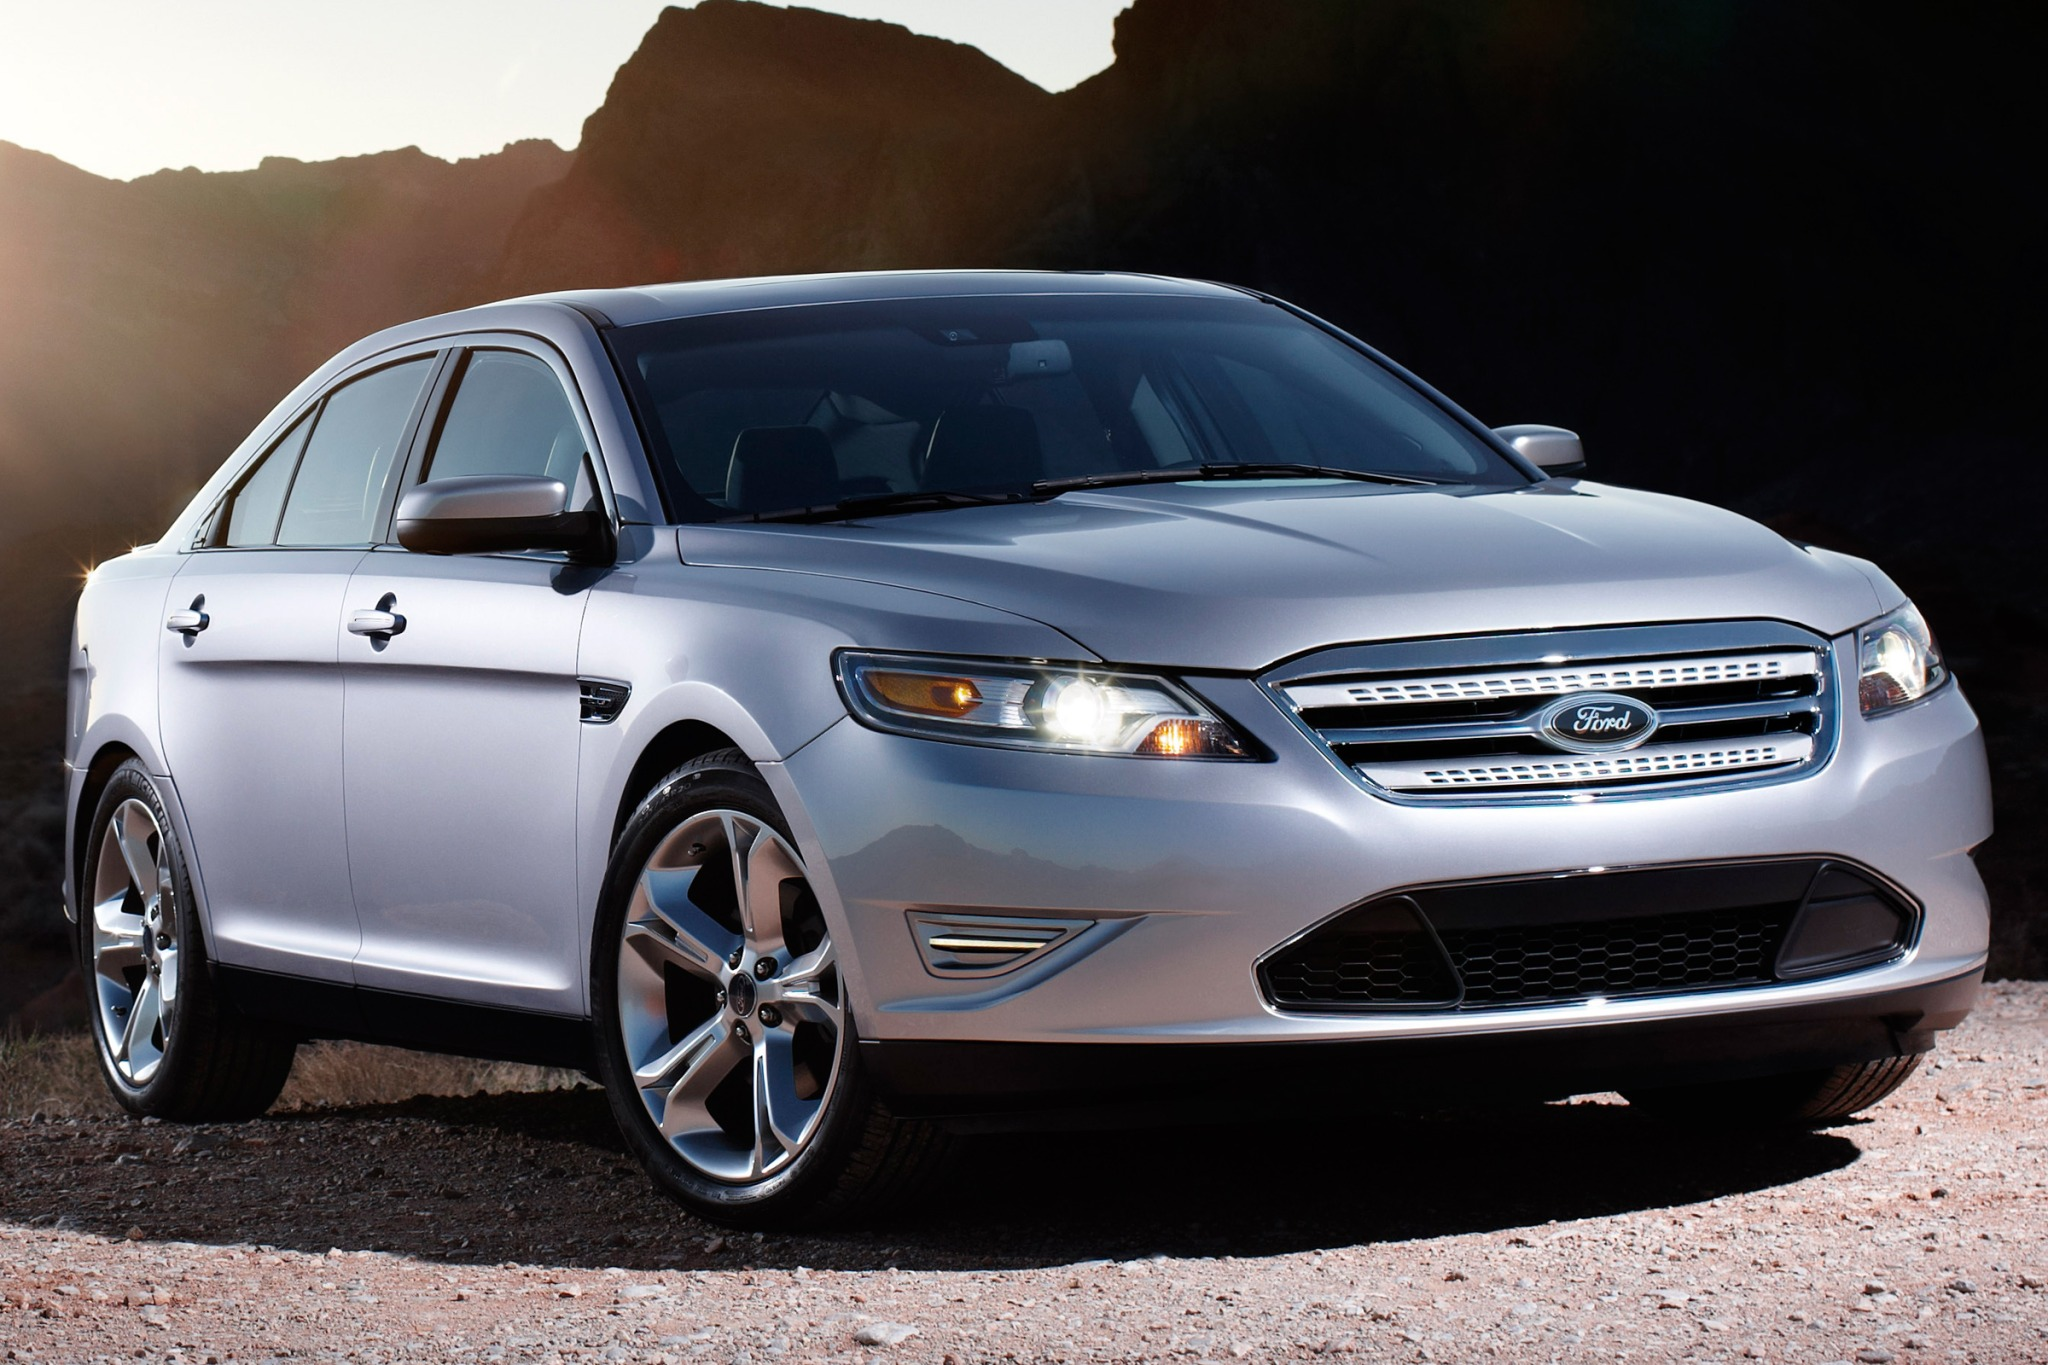 2010 Ford Taurus Limited  exterior #3